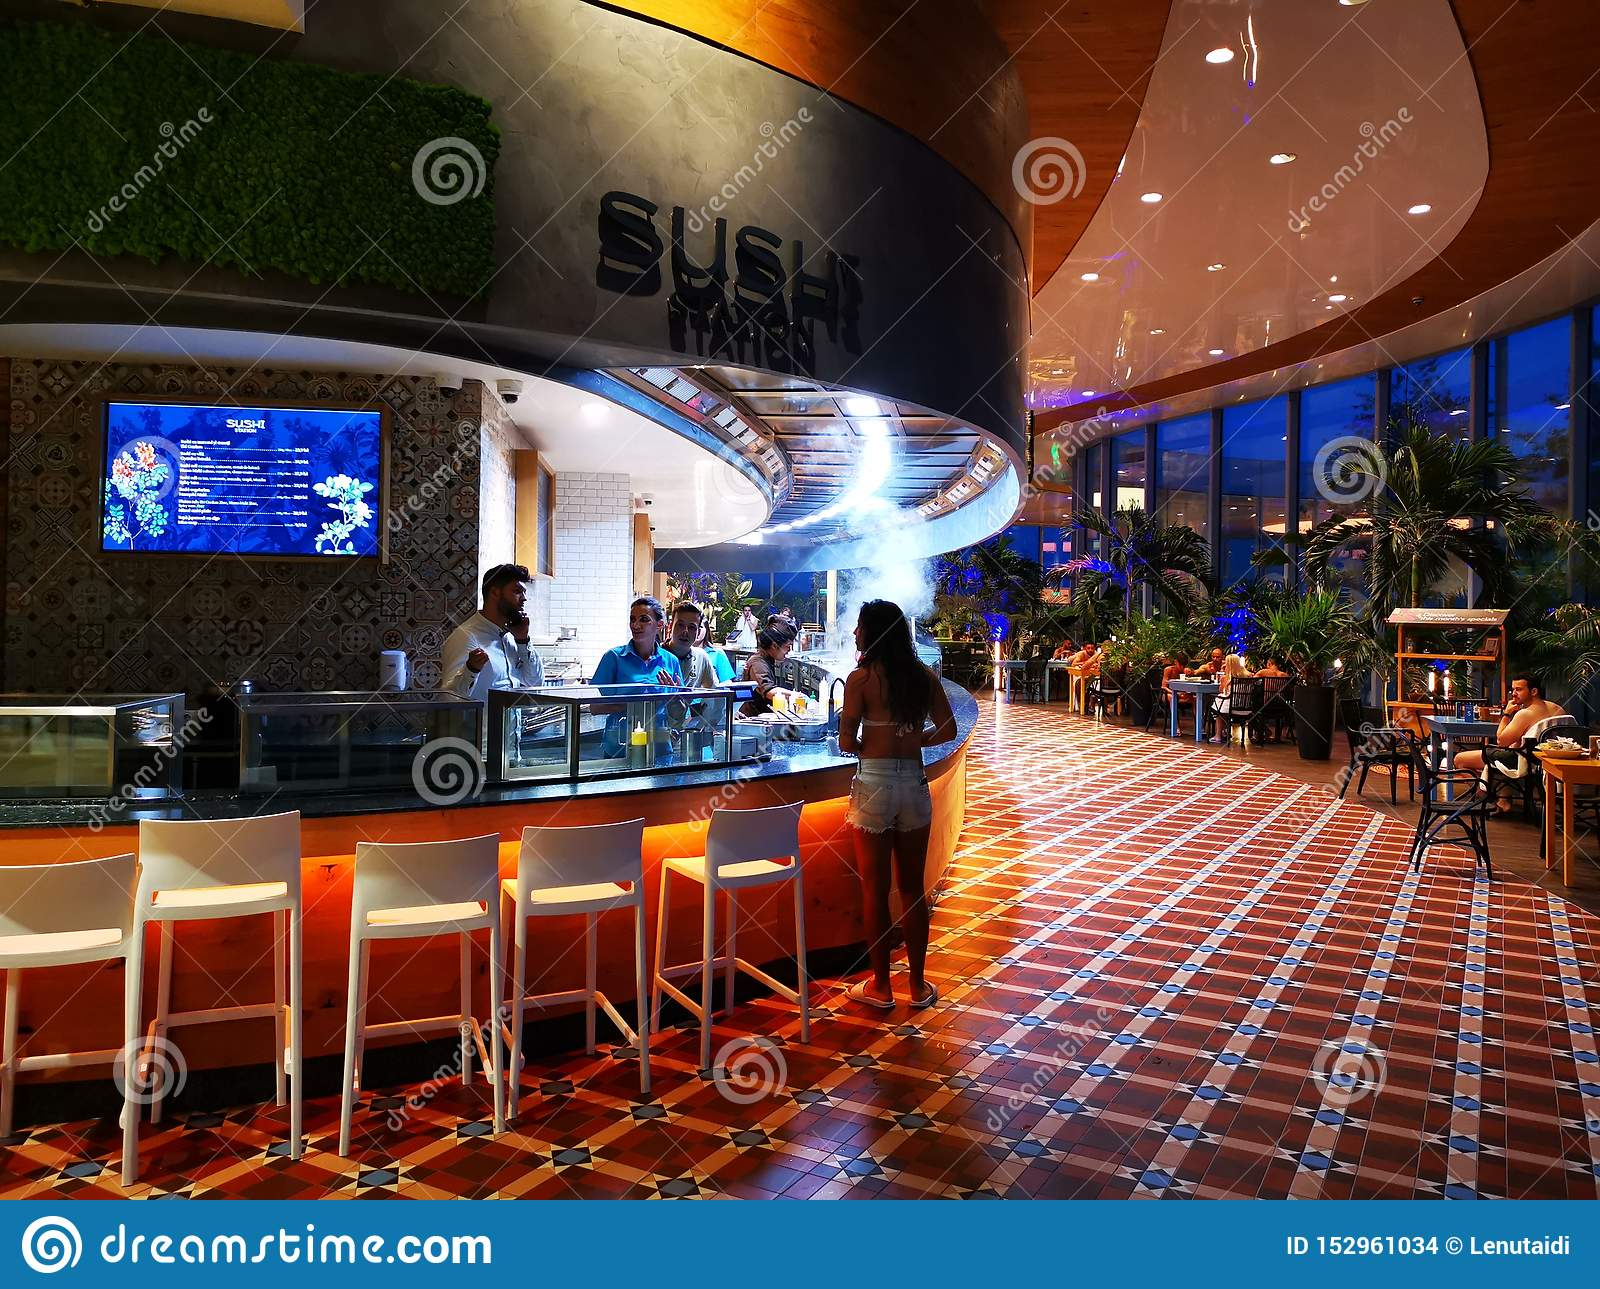 Modern Restaurant Sushi Station At Therme Bucharest Romania Editorial Stock Image Image Of Food Chair 152961034 View the menu, current specials & order food online now. https www dreamstime com modern restaurant sushi station therme bucharest romania palm trees modern furniture modern restaurant sushi station image152961034